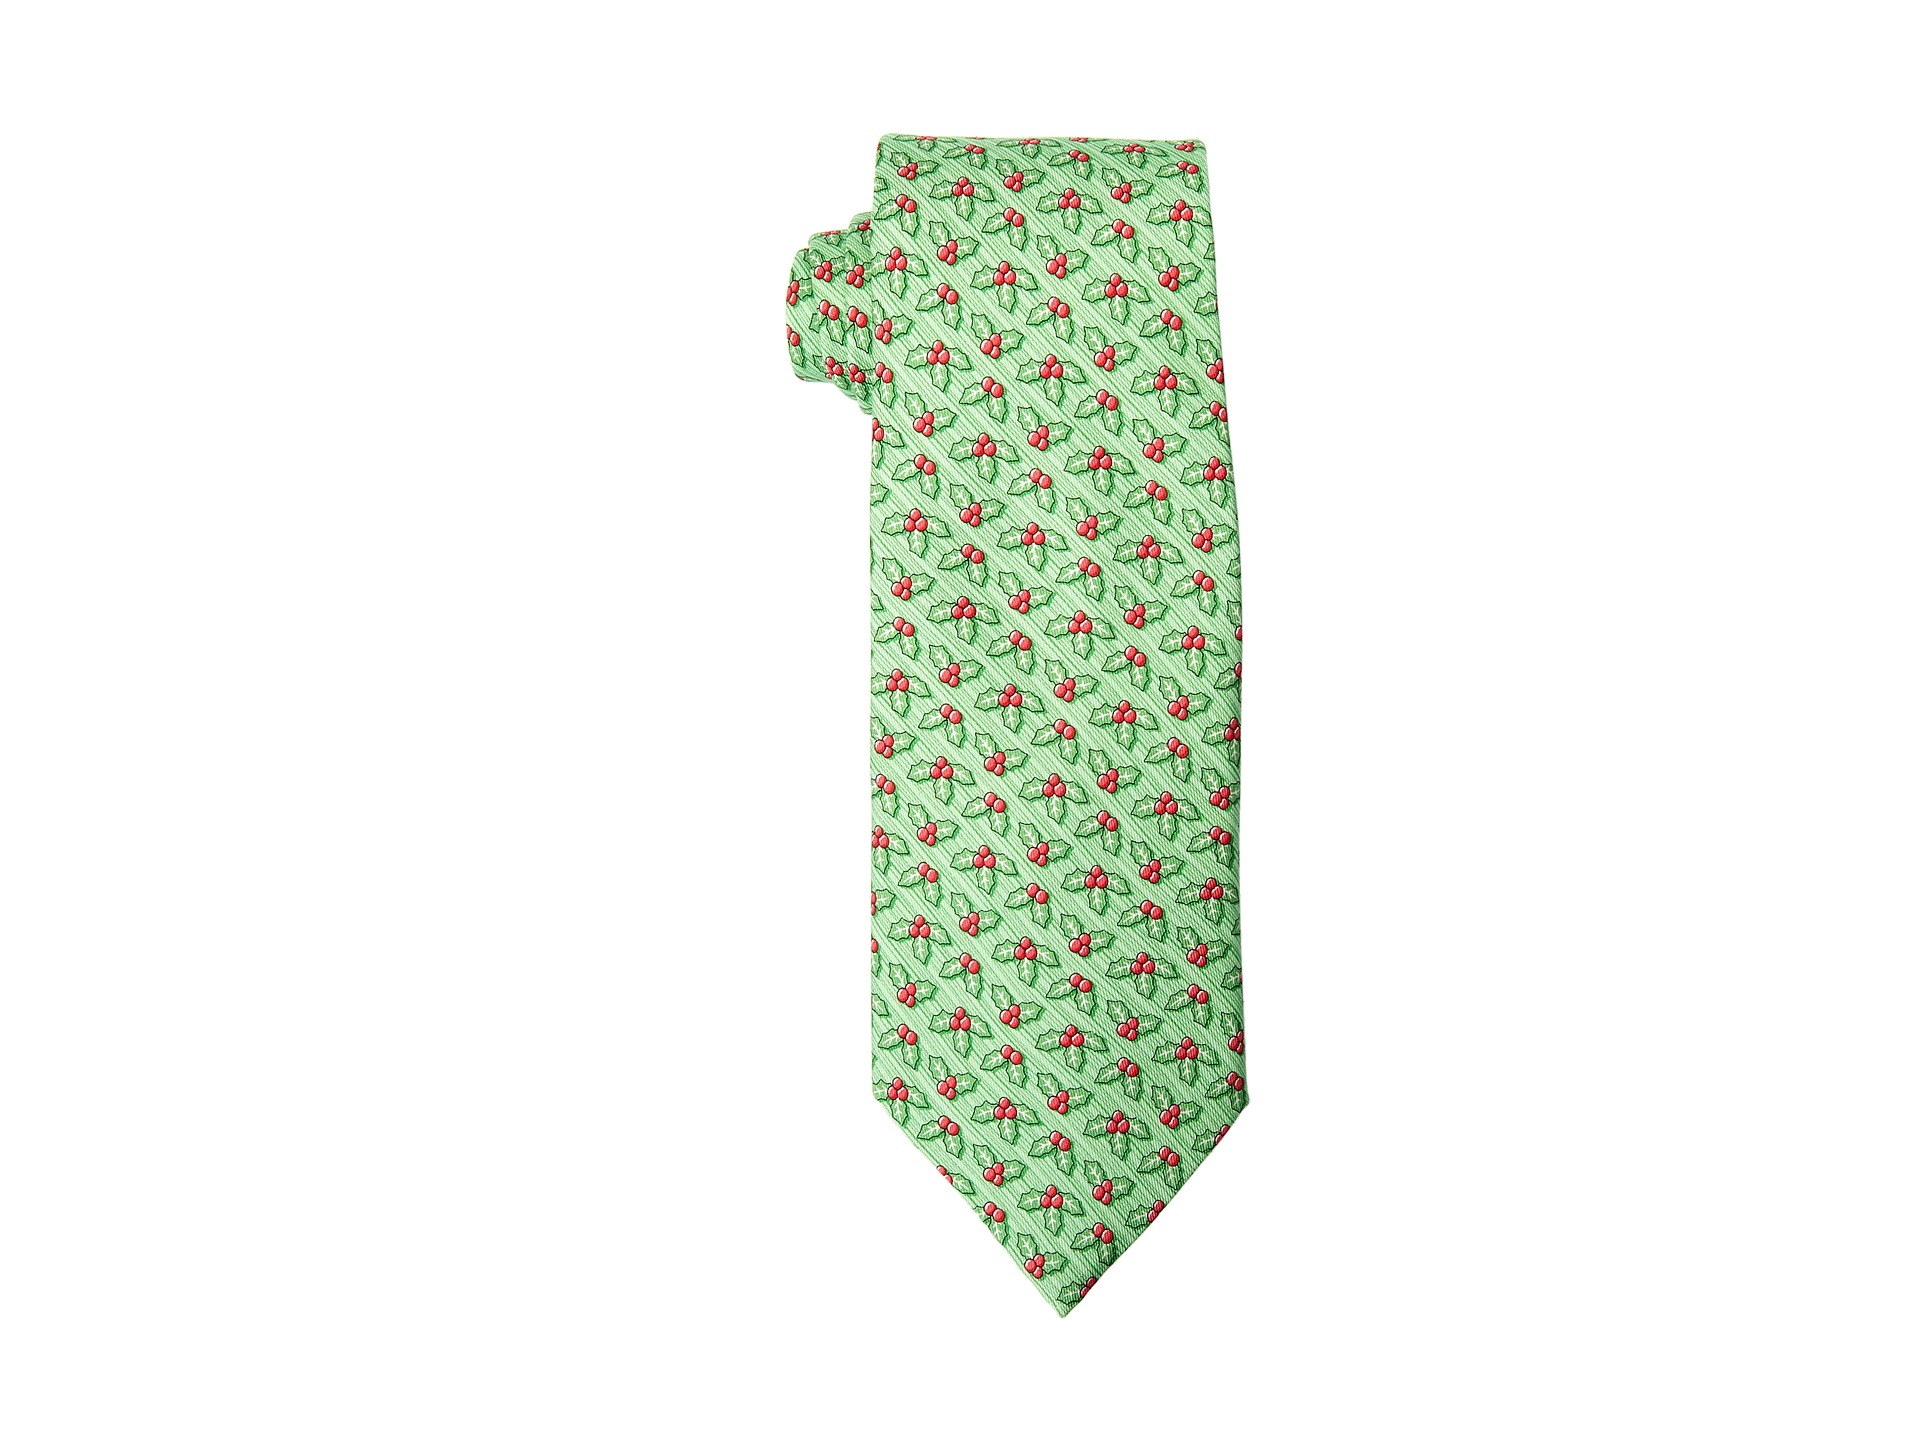 vineyard vines tie green shipped free at zappos